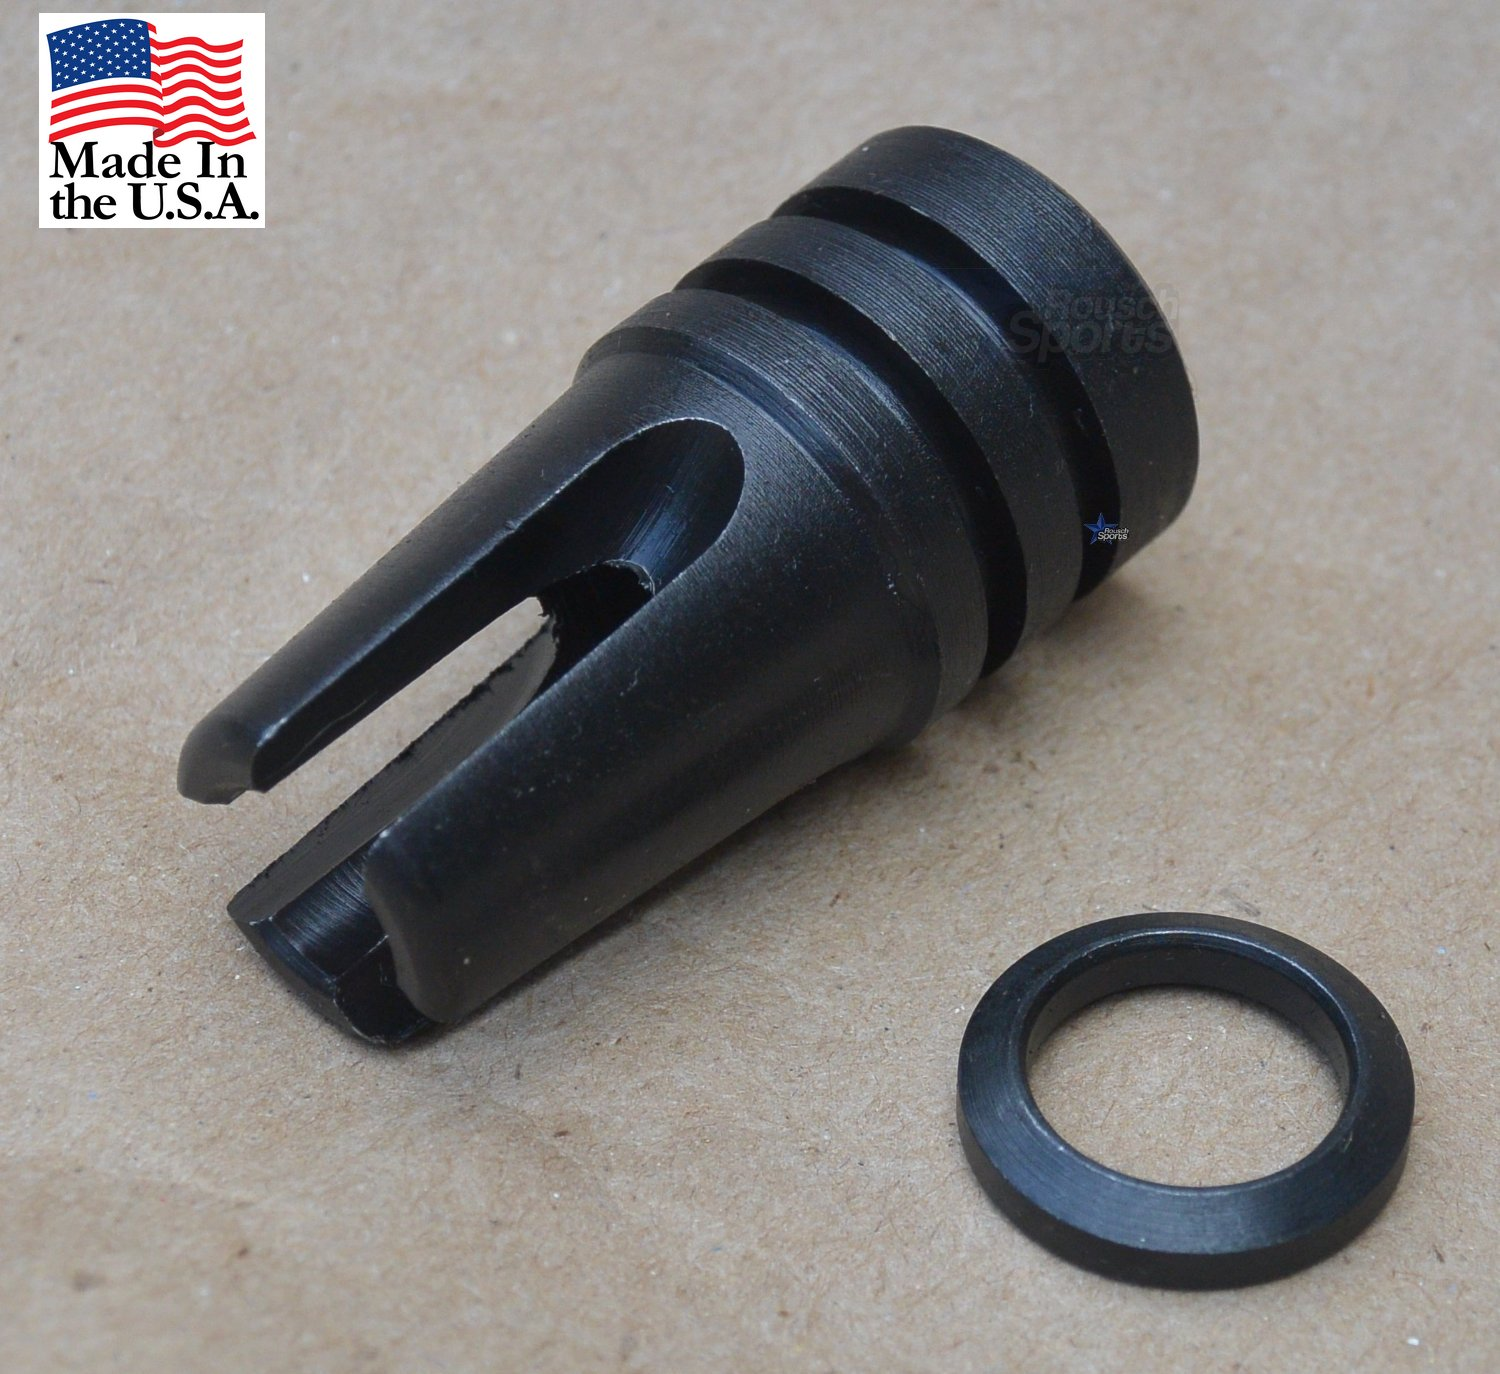 AR15 M15 M4 3 Prong Flash Hider -SP1 Retro Rousch Sports Austin Texas Wholesale Discount Best Prices Tactical